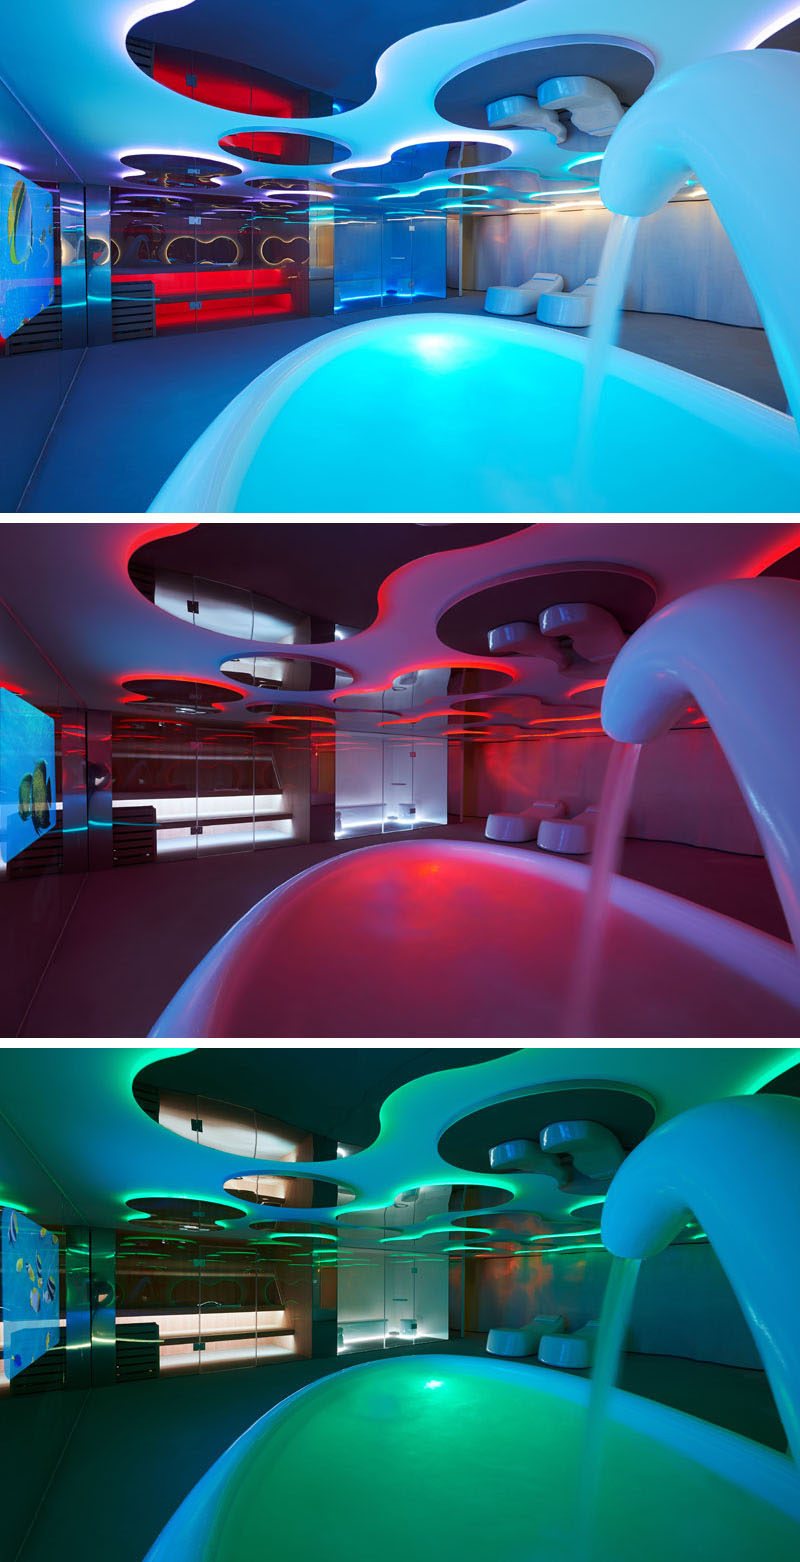 This room in a spa can have the colors changed depending on the desired mood.